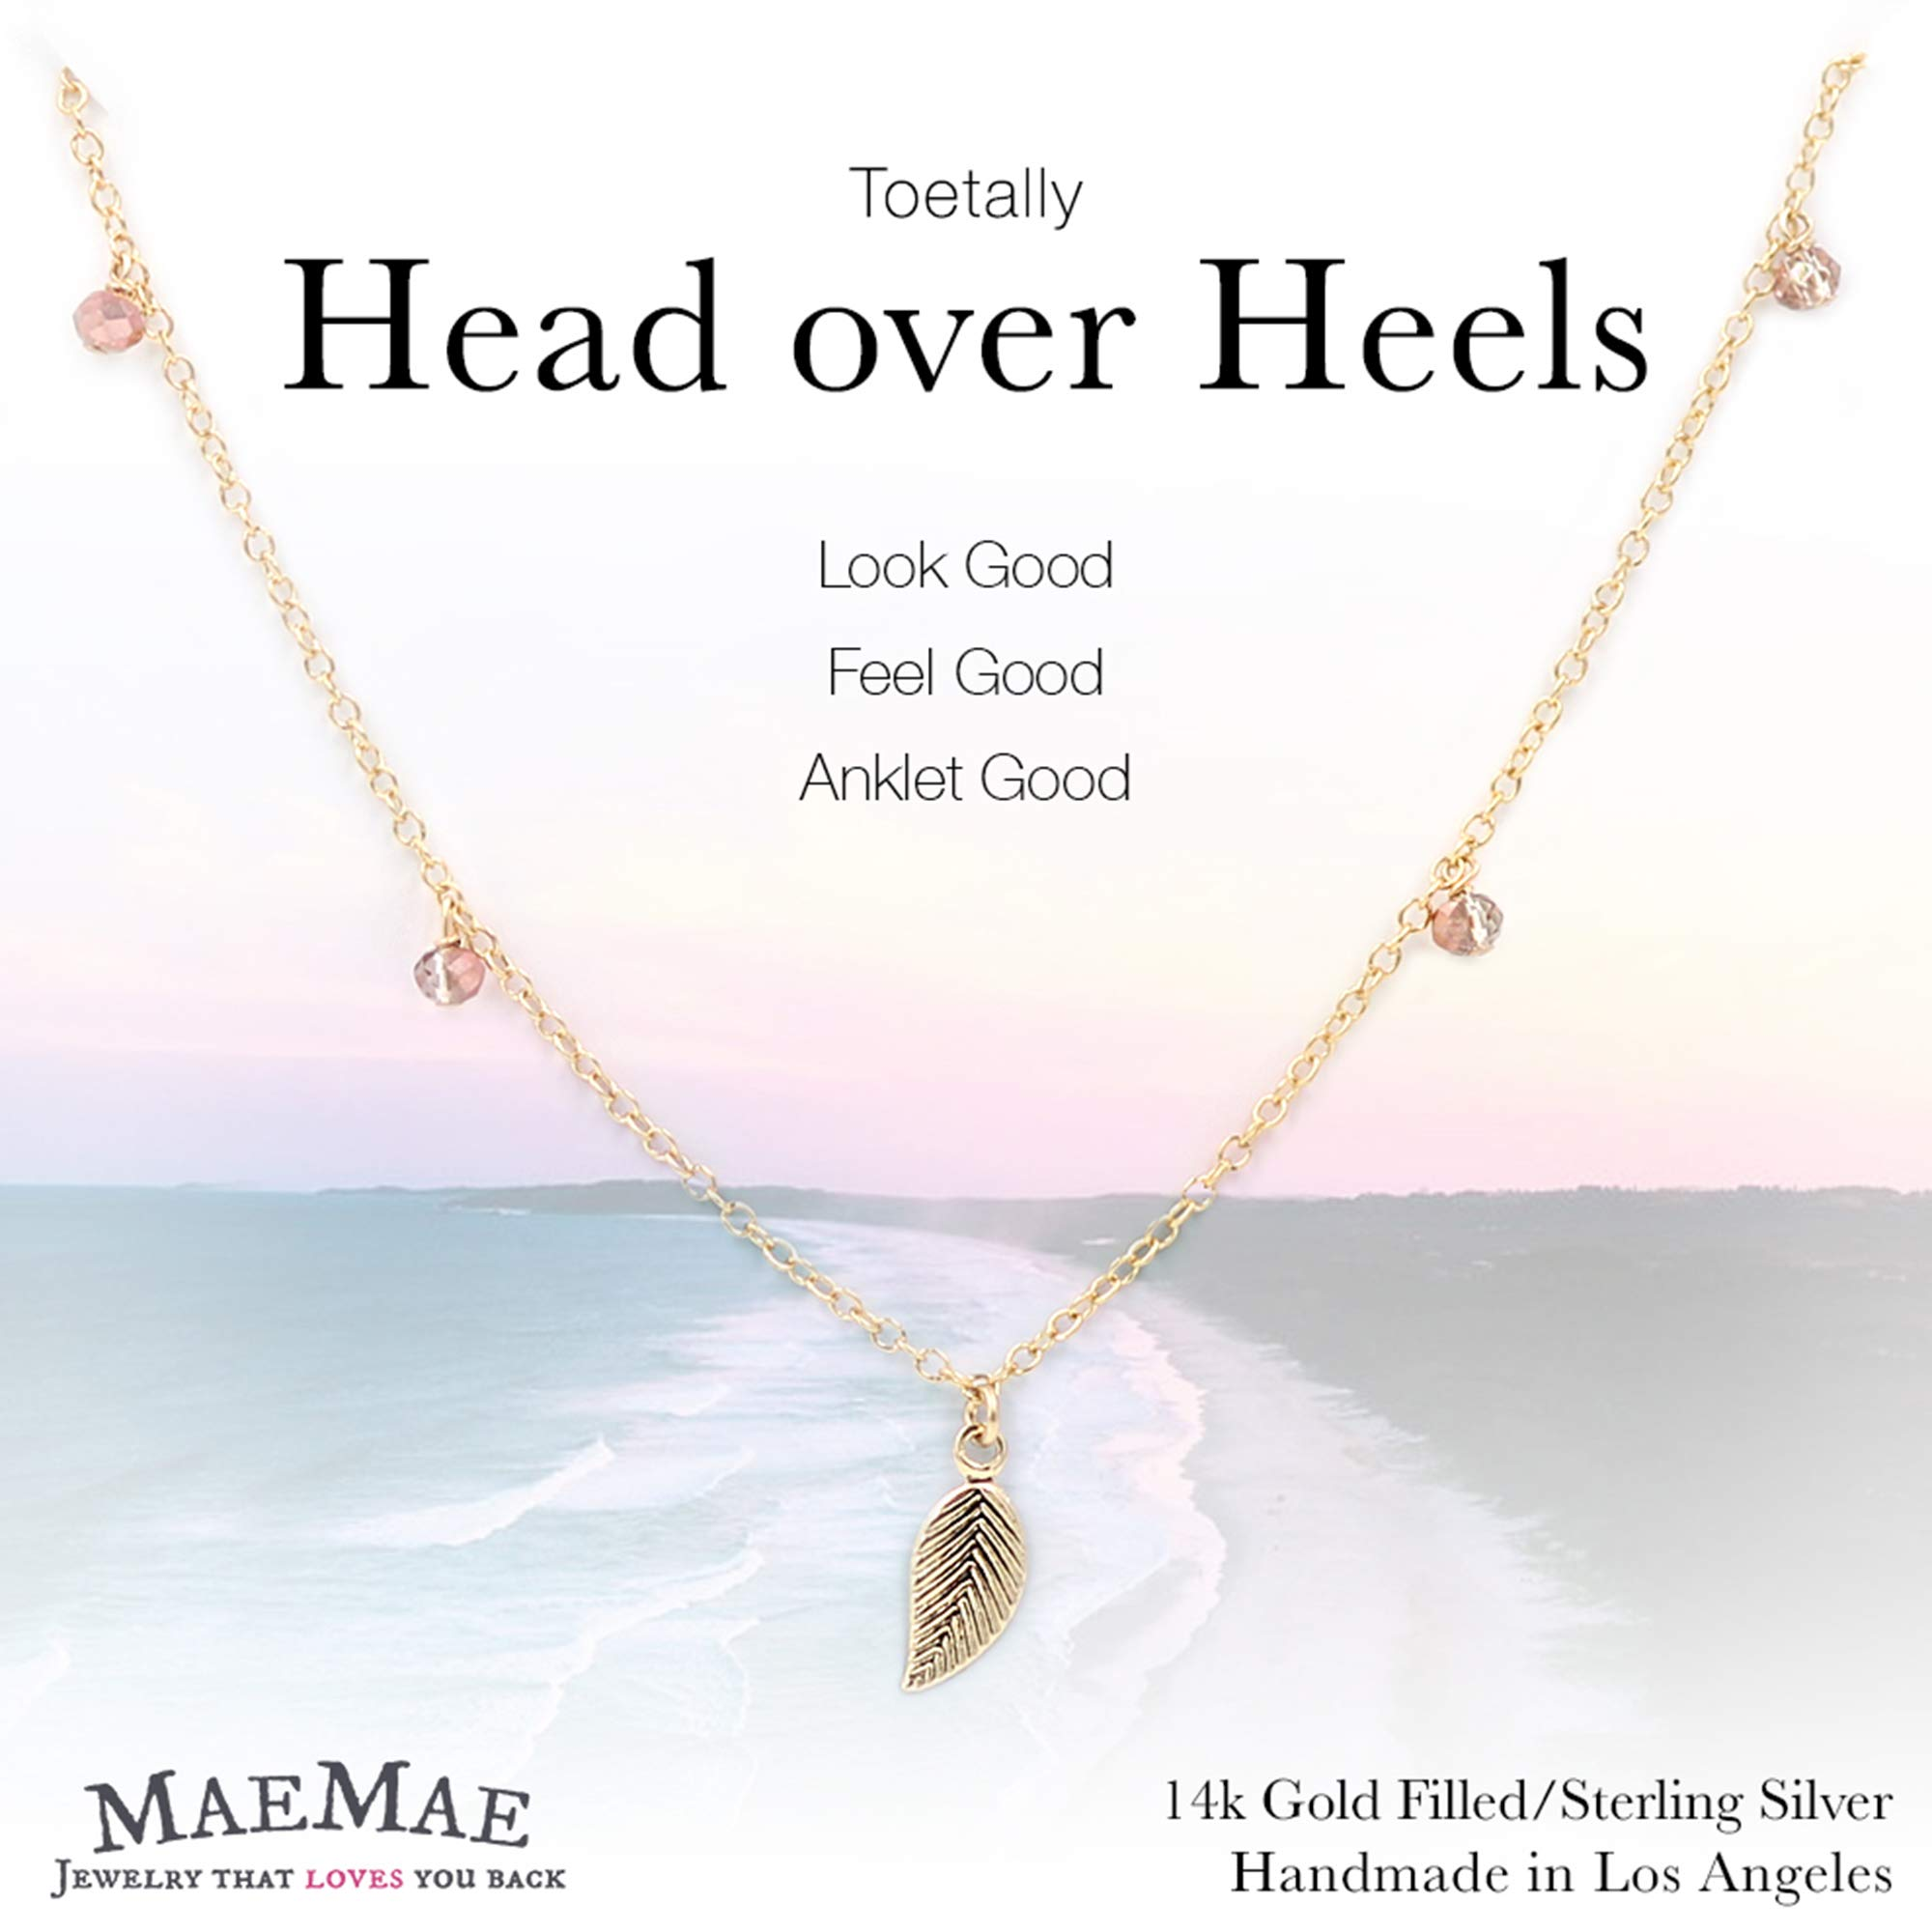 MaeMae 14k Gold Filled Leaf Charm Anklet, 3mm Light Pink Swarovski Crystals, Cable Chain, 8.5''+1'' Extender